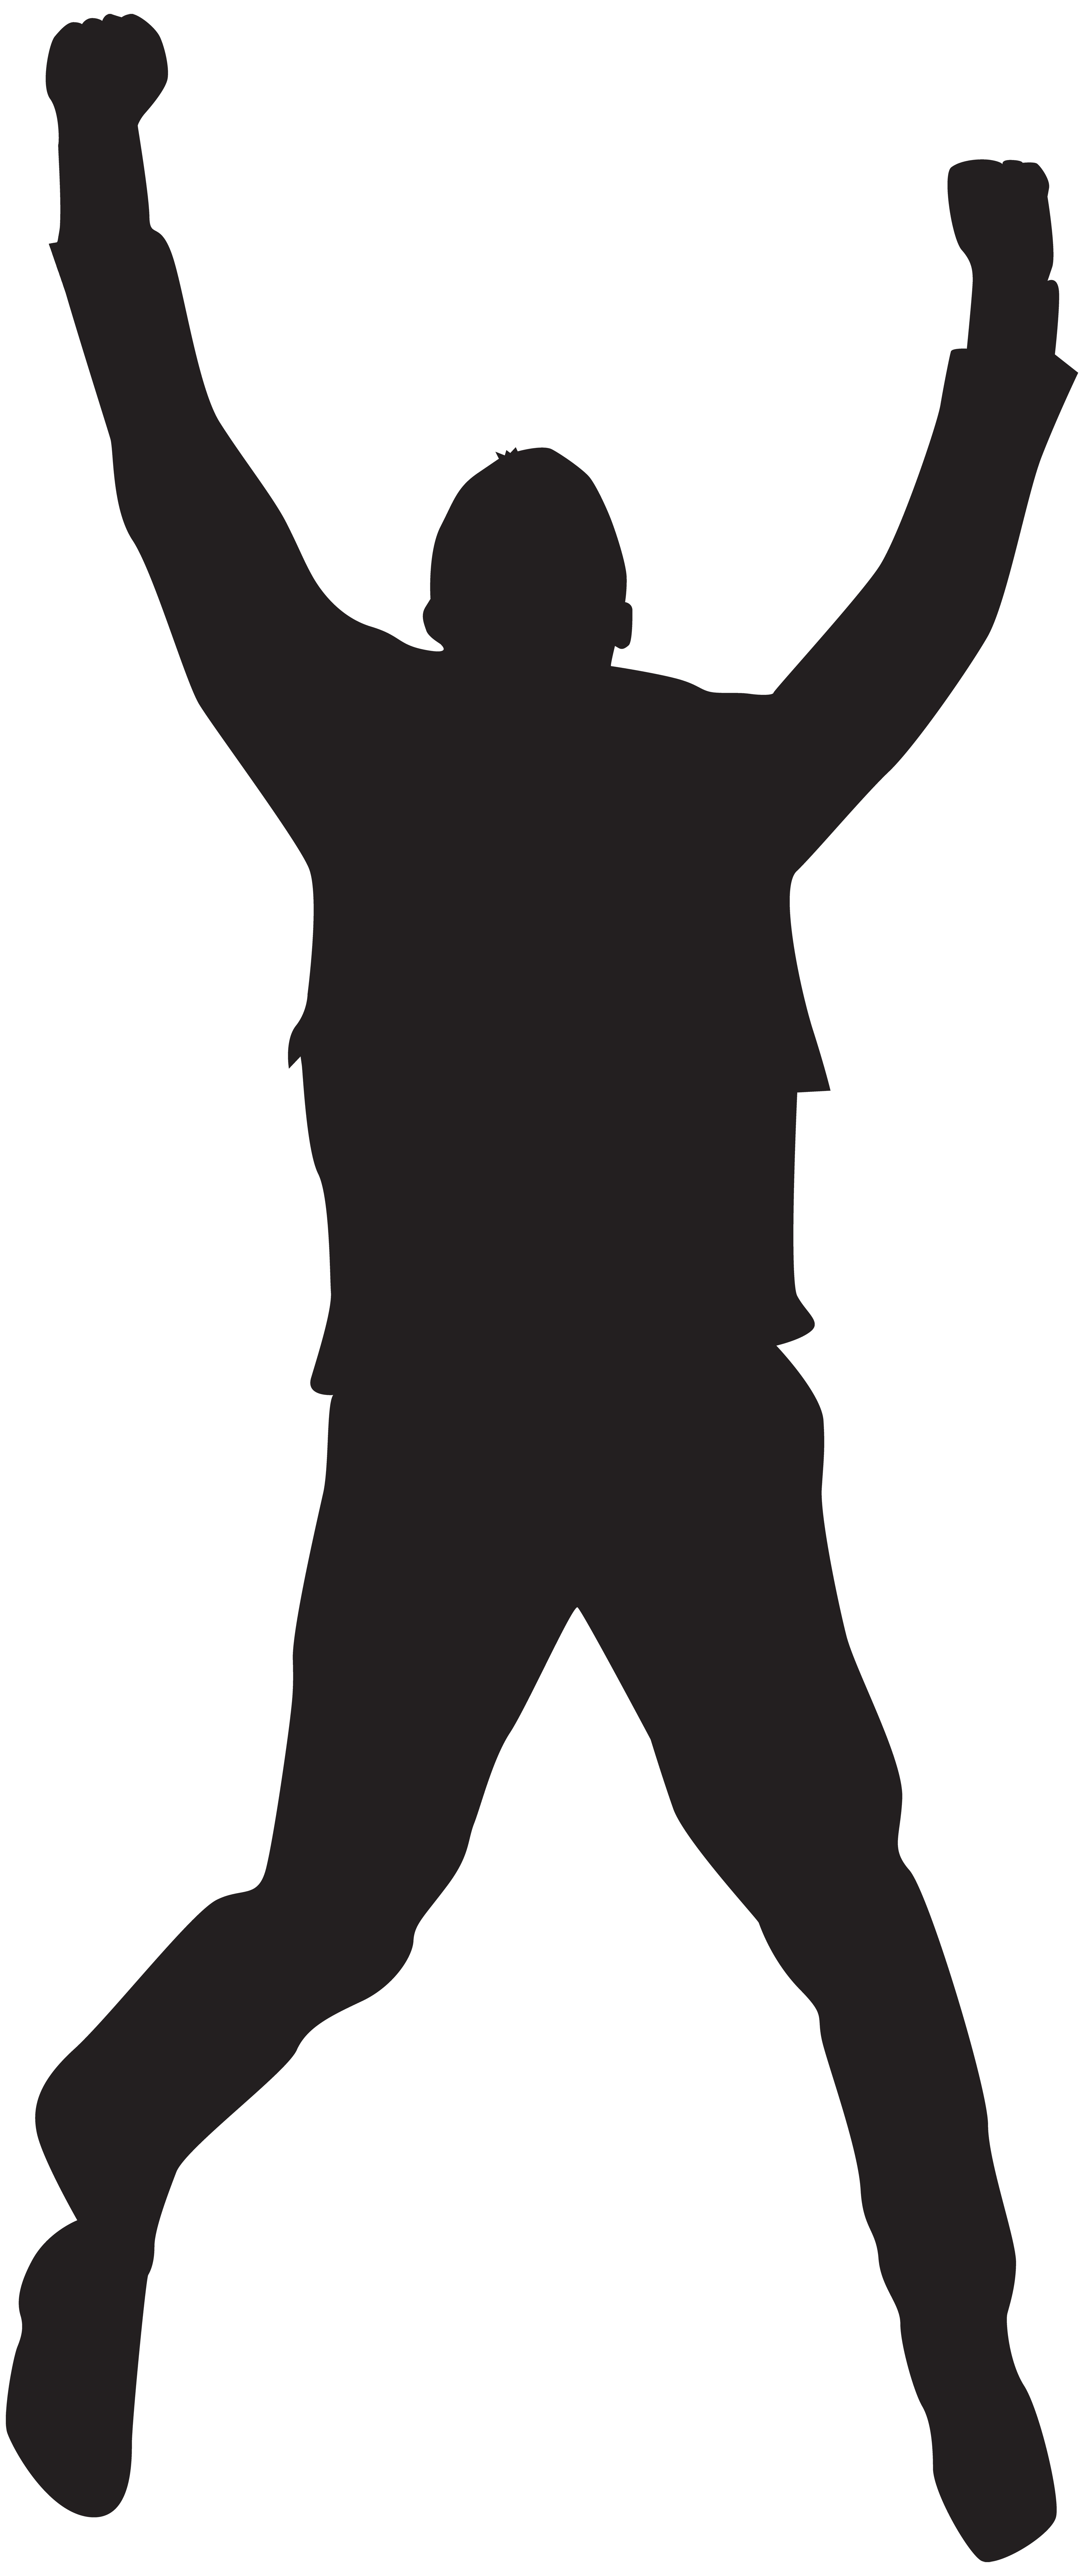 Jumping Happy Man Silhouette Png Clip Art Image Gallery Yopriceville High Quality Images And Transparent Png Free Clipa Silhouette Png Clip Art Art Images